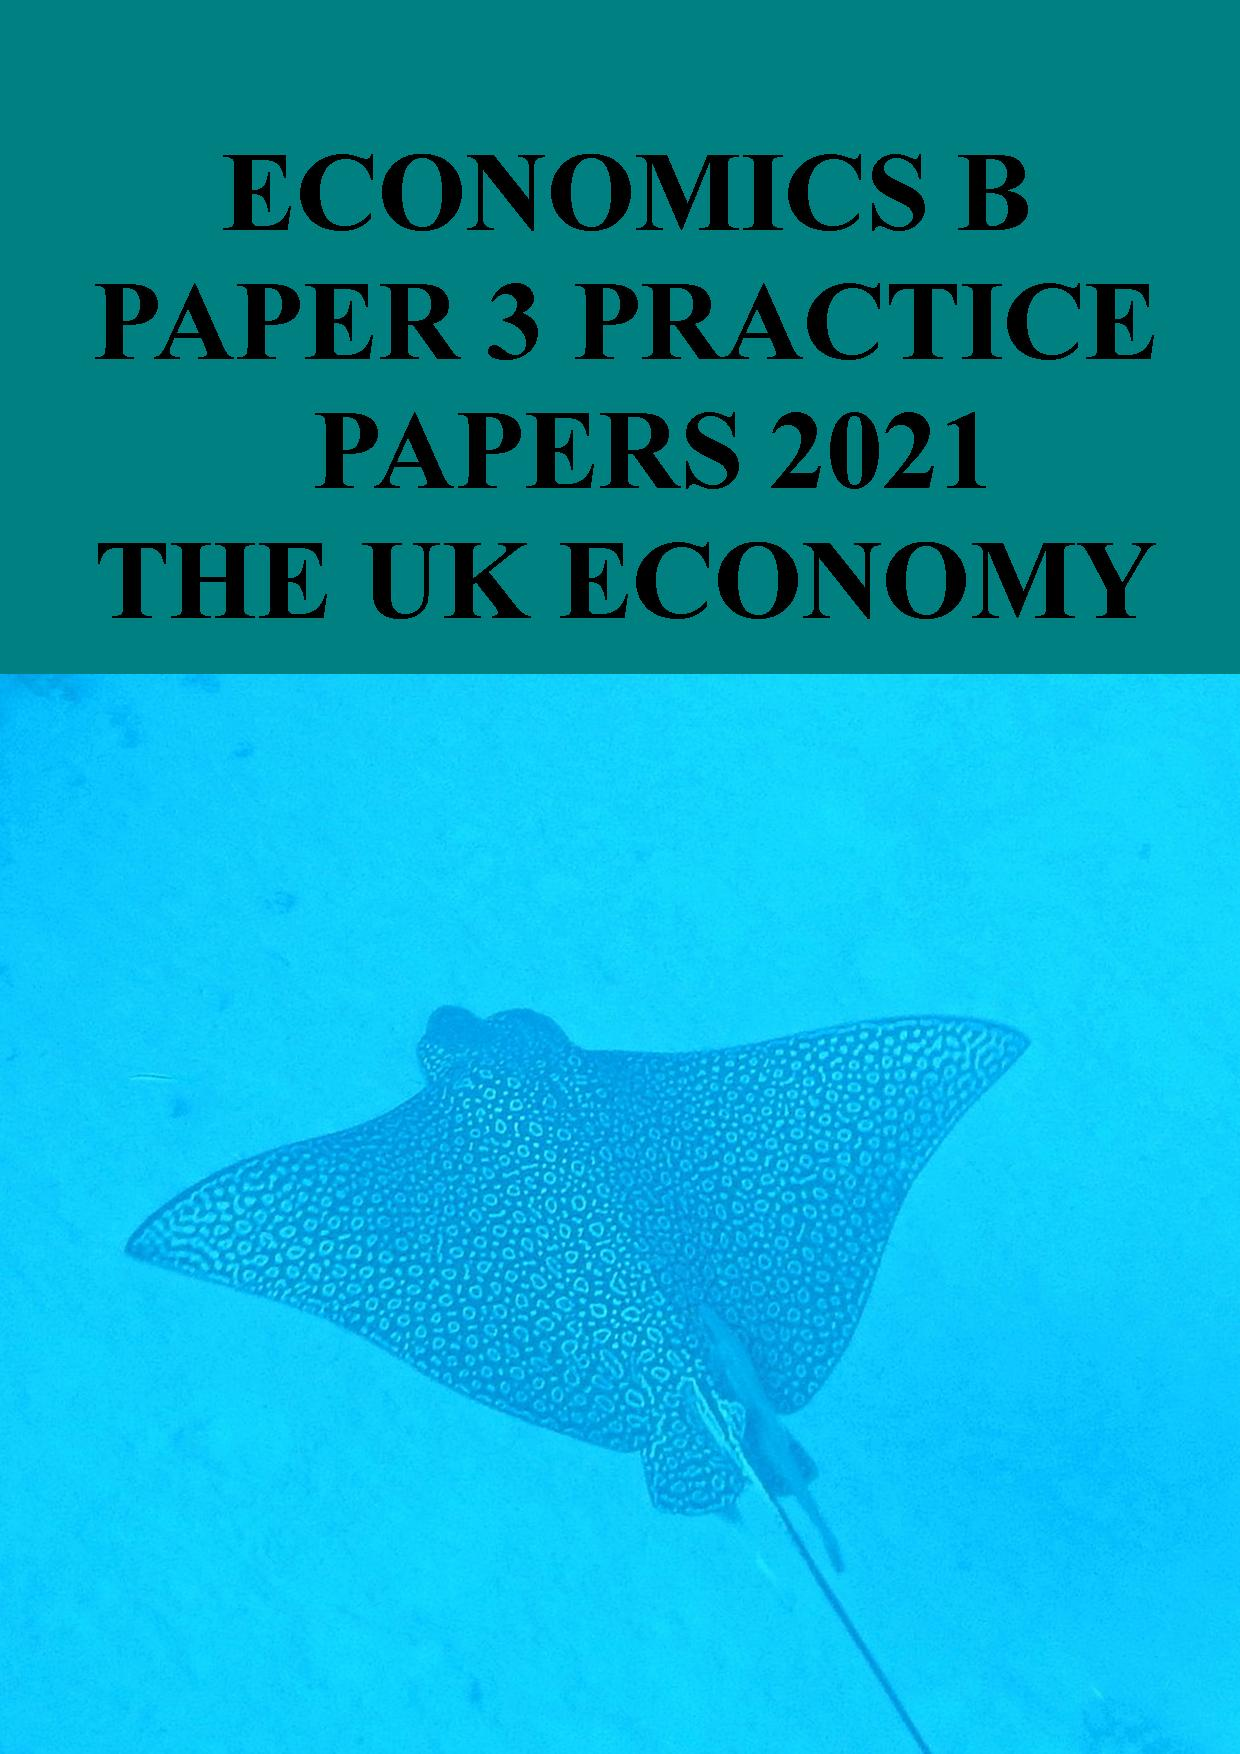 Paper 3 Practice Papers 2021 - The UK Economy